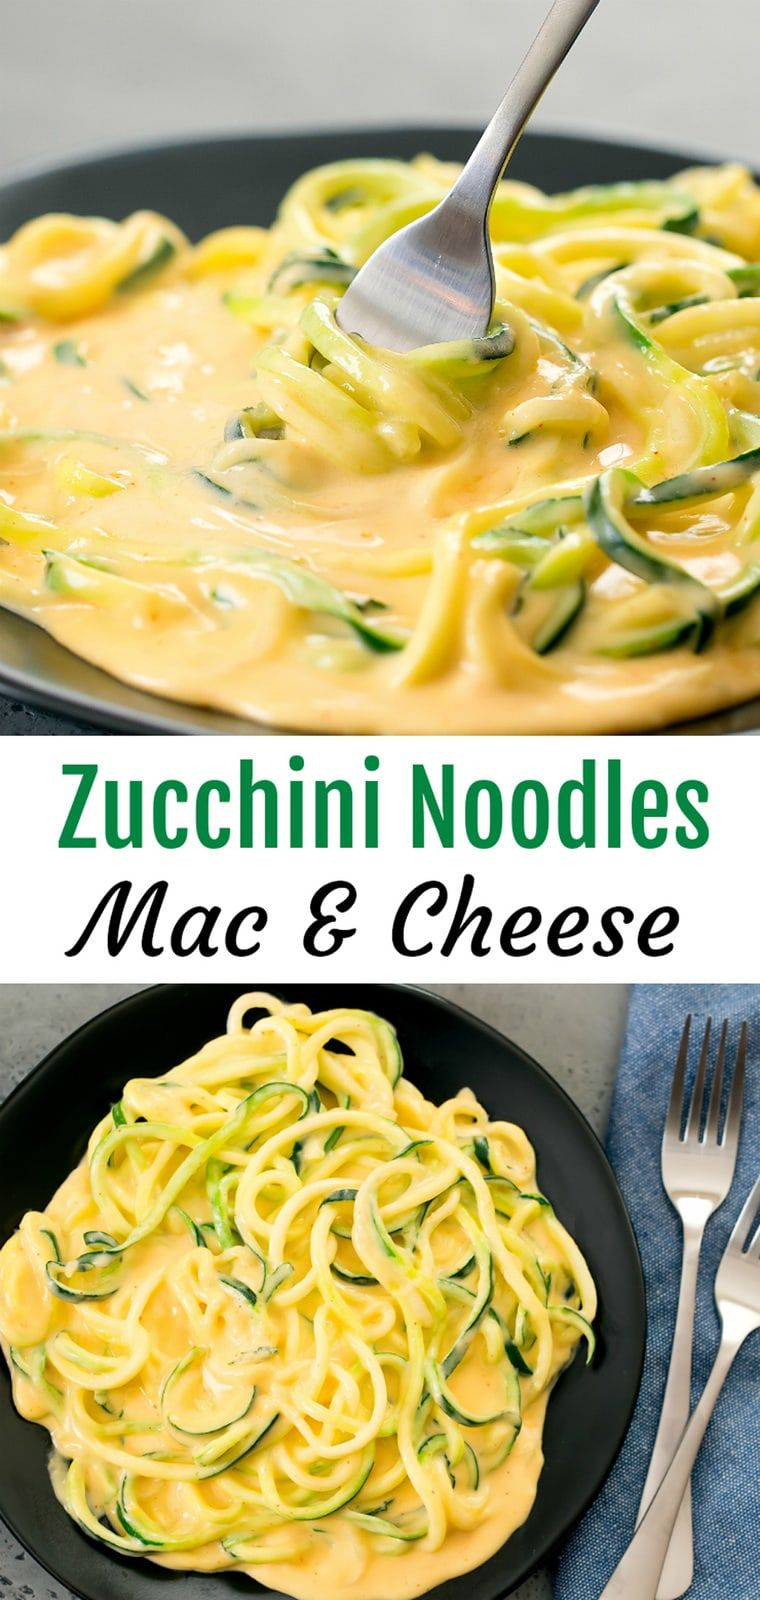 Photo of Zucchini Noodles Mac & Cheese